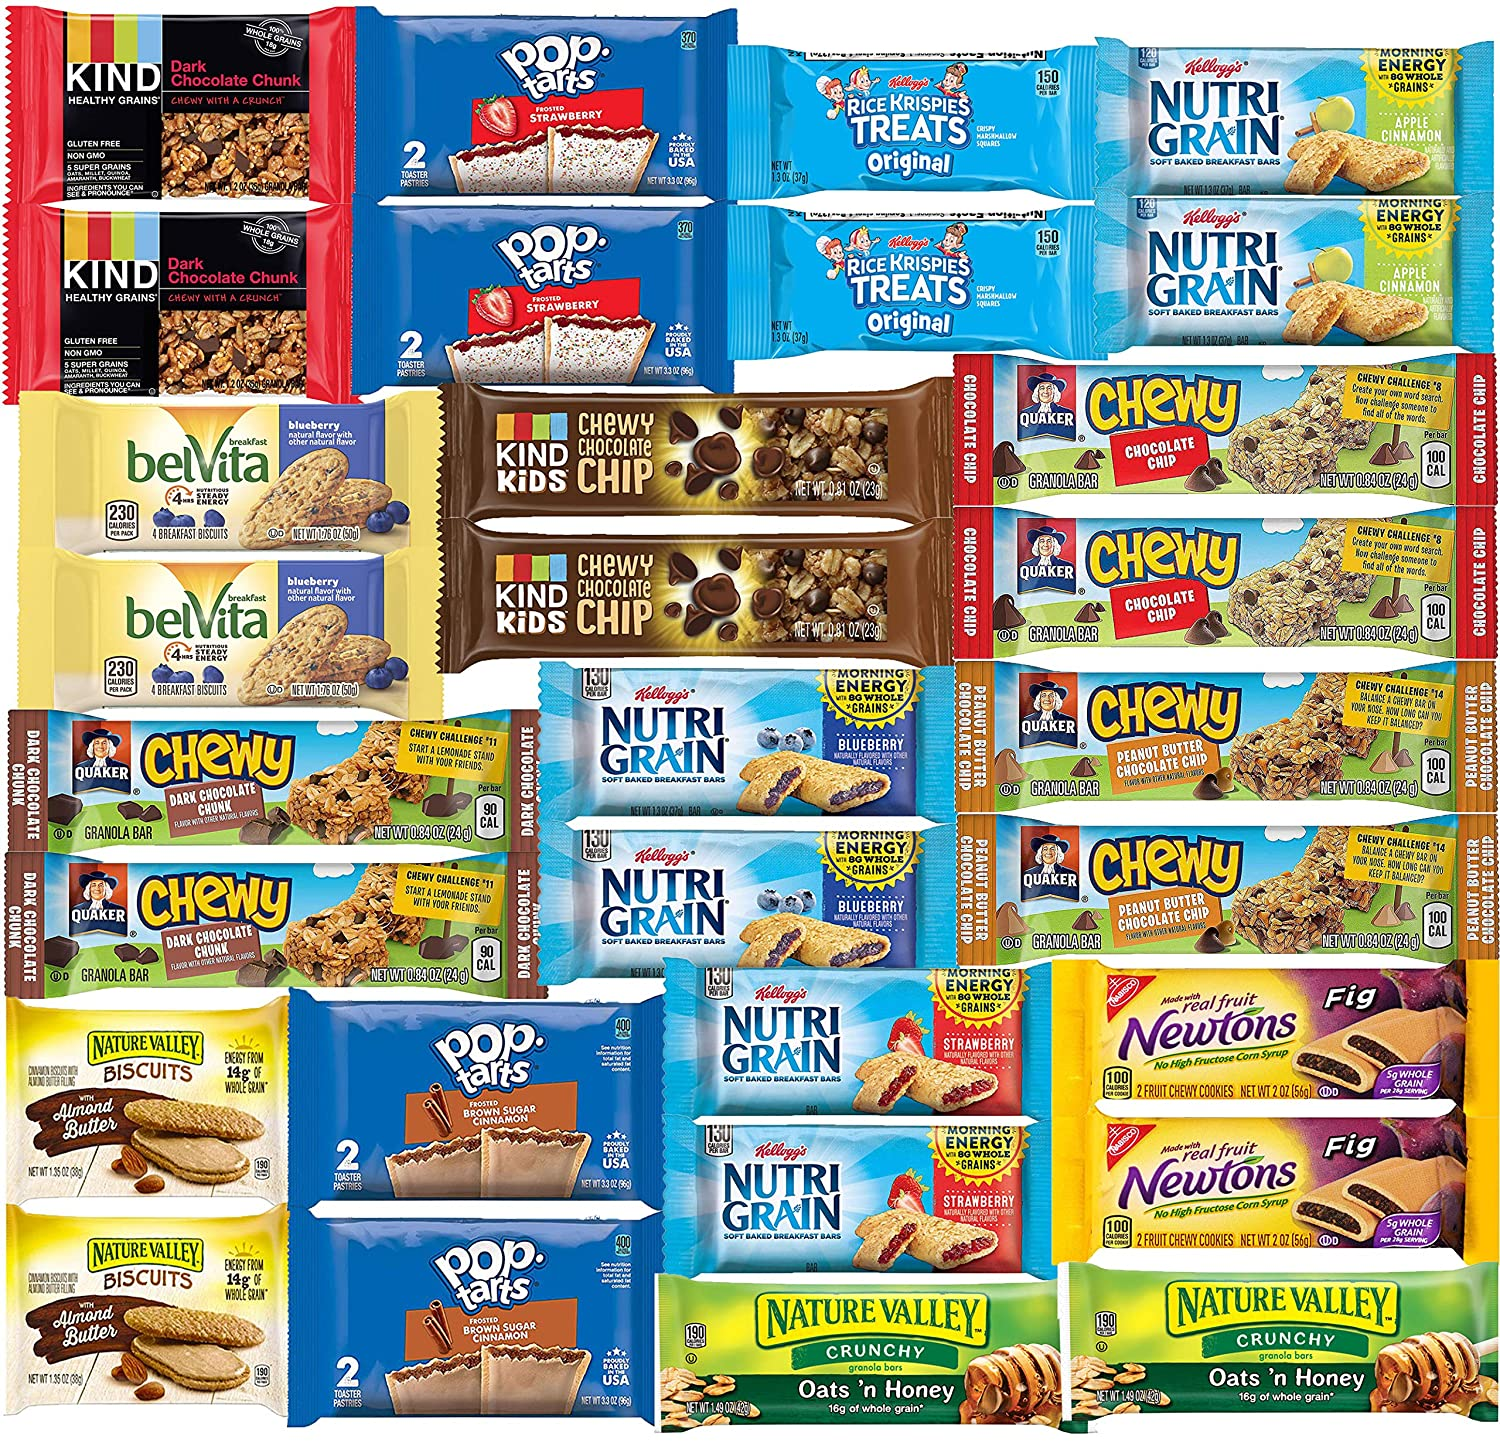 breakfast bars granola bars variety pack healthy snacks bulk kind bars care package 30 count amazon com grocery gourmet food amazon com